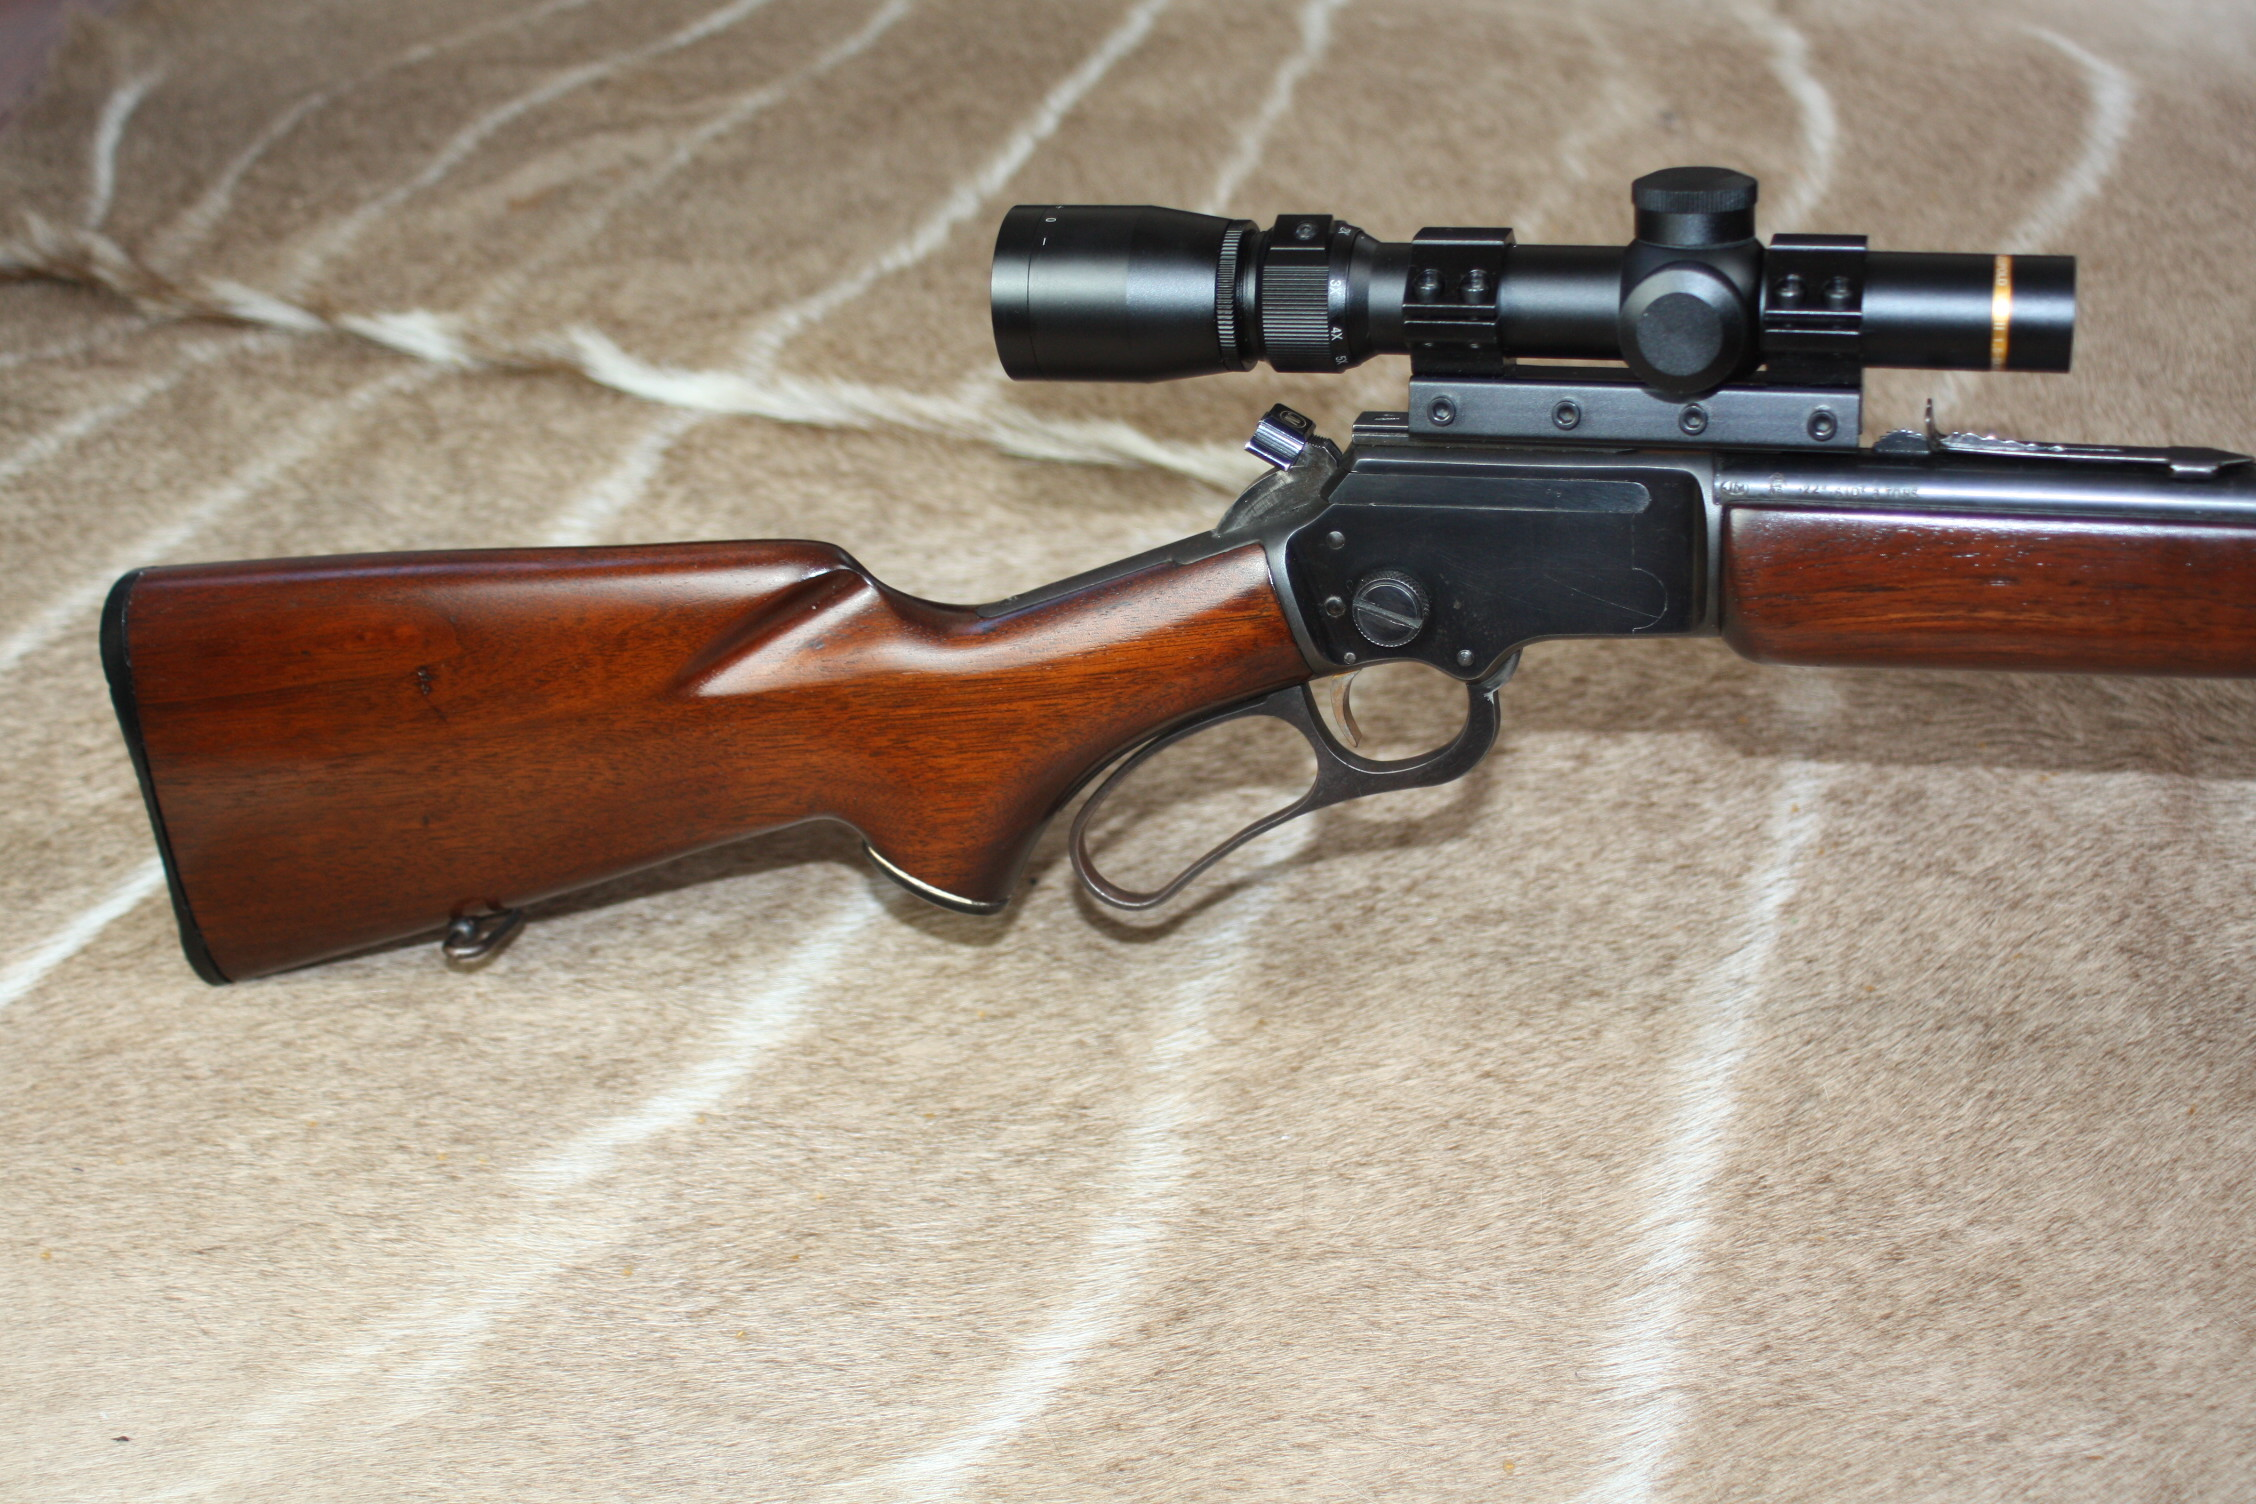 Marlin 39A .22LR Lever Action Rifle